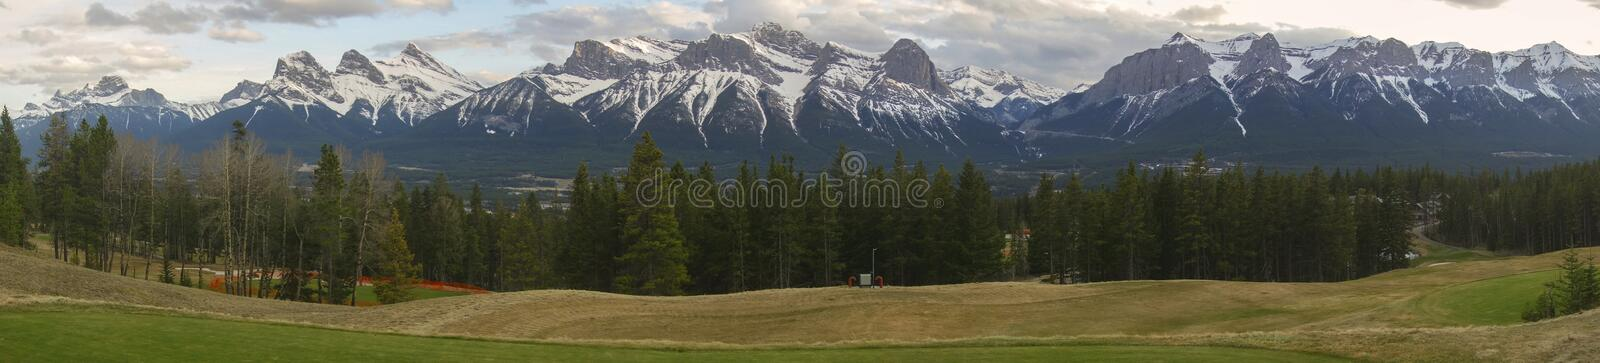 Pilbågedal Canmore Alberta Foothills Wide Panoramic Landscape arkivfoto